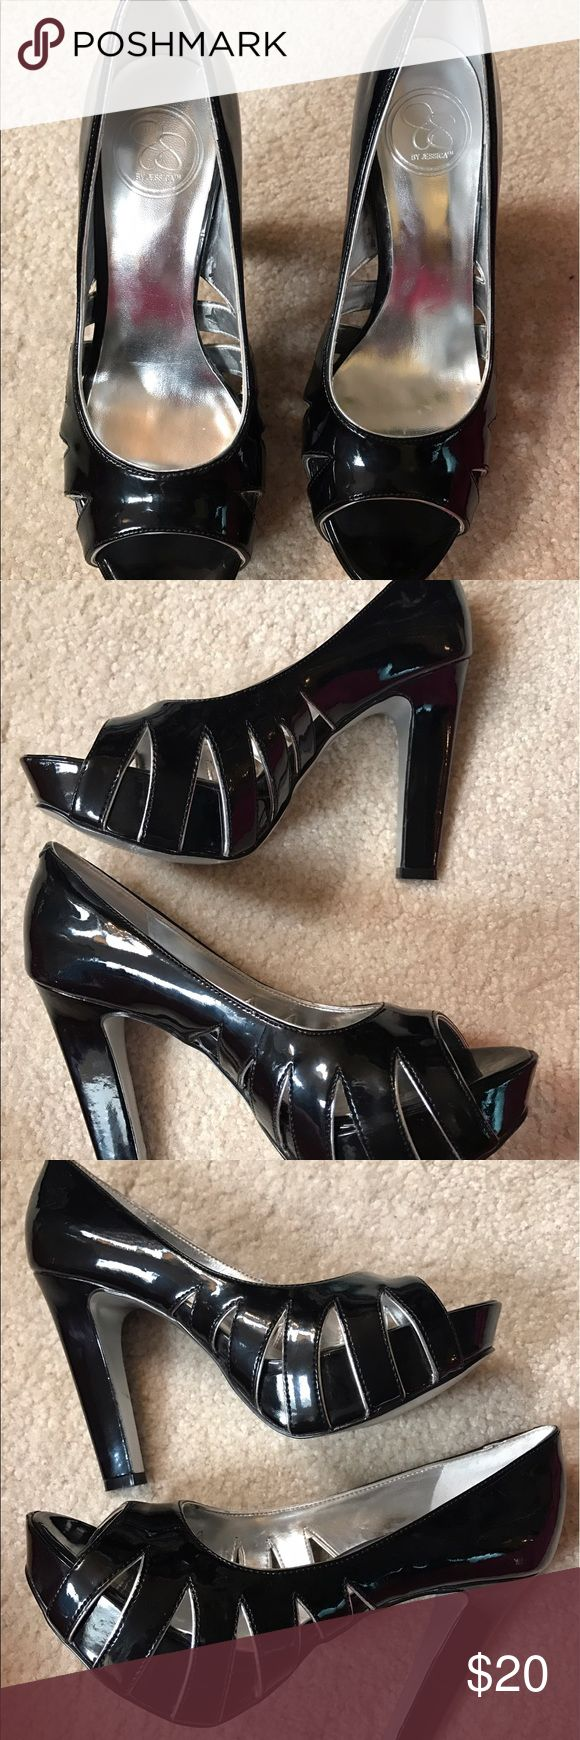 Jessica black patent leather pumps Sexy Jessica Black Patent Leather pumps. Barely worn; minor scuffs. Size 6B/36 Jessica Simpson Shoes Heels